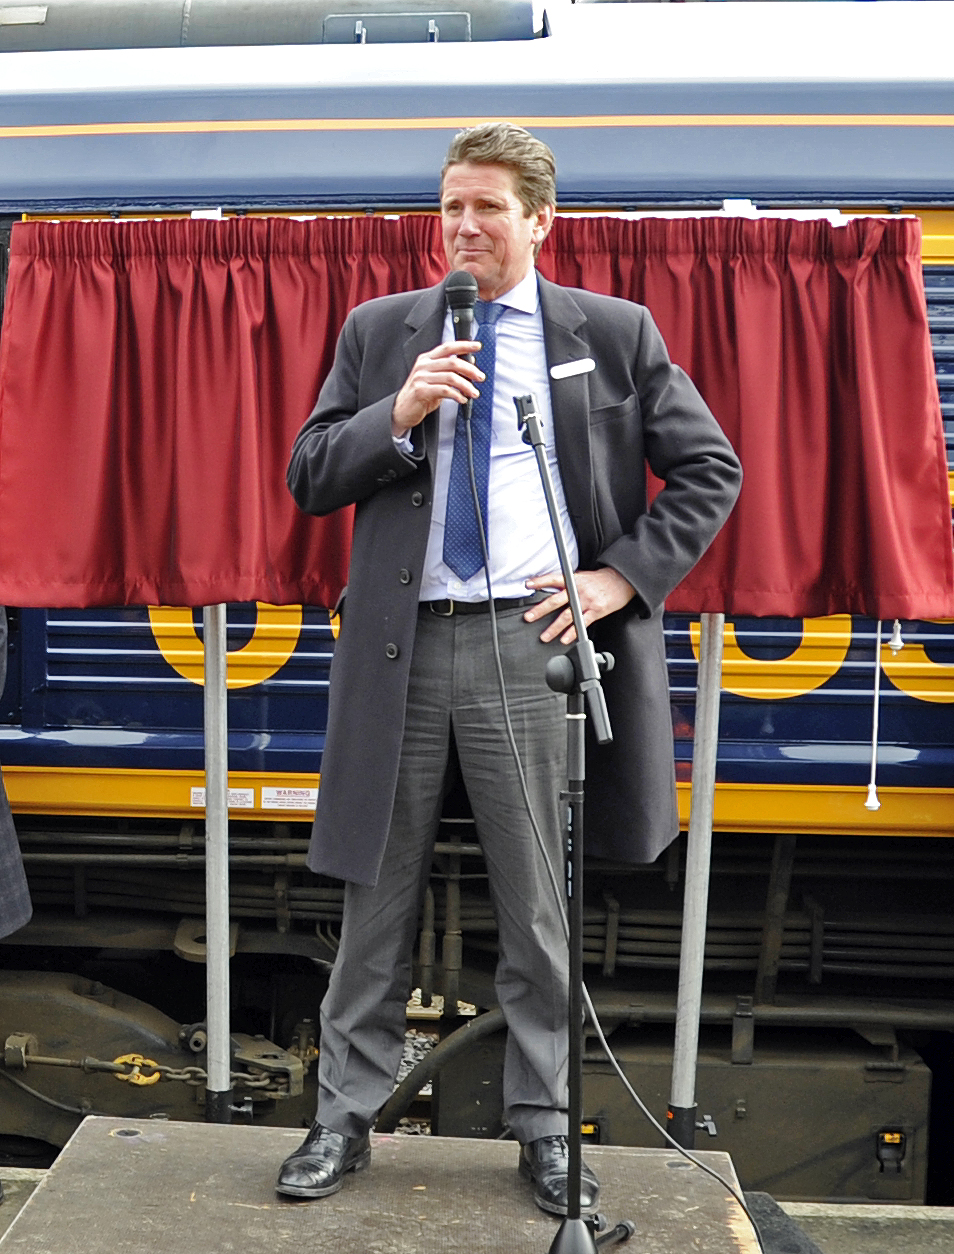 John Smith, Managing Director GBRf, addresses the audience.  Horsted Keynes 28.03.2013  6363